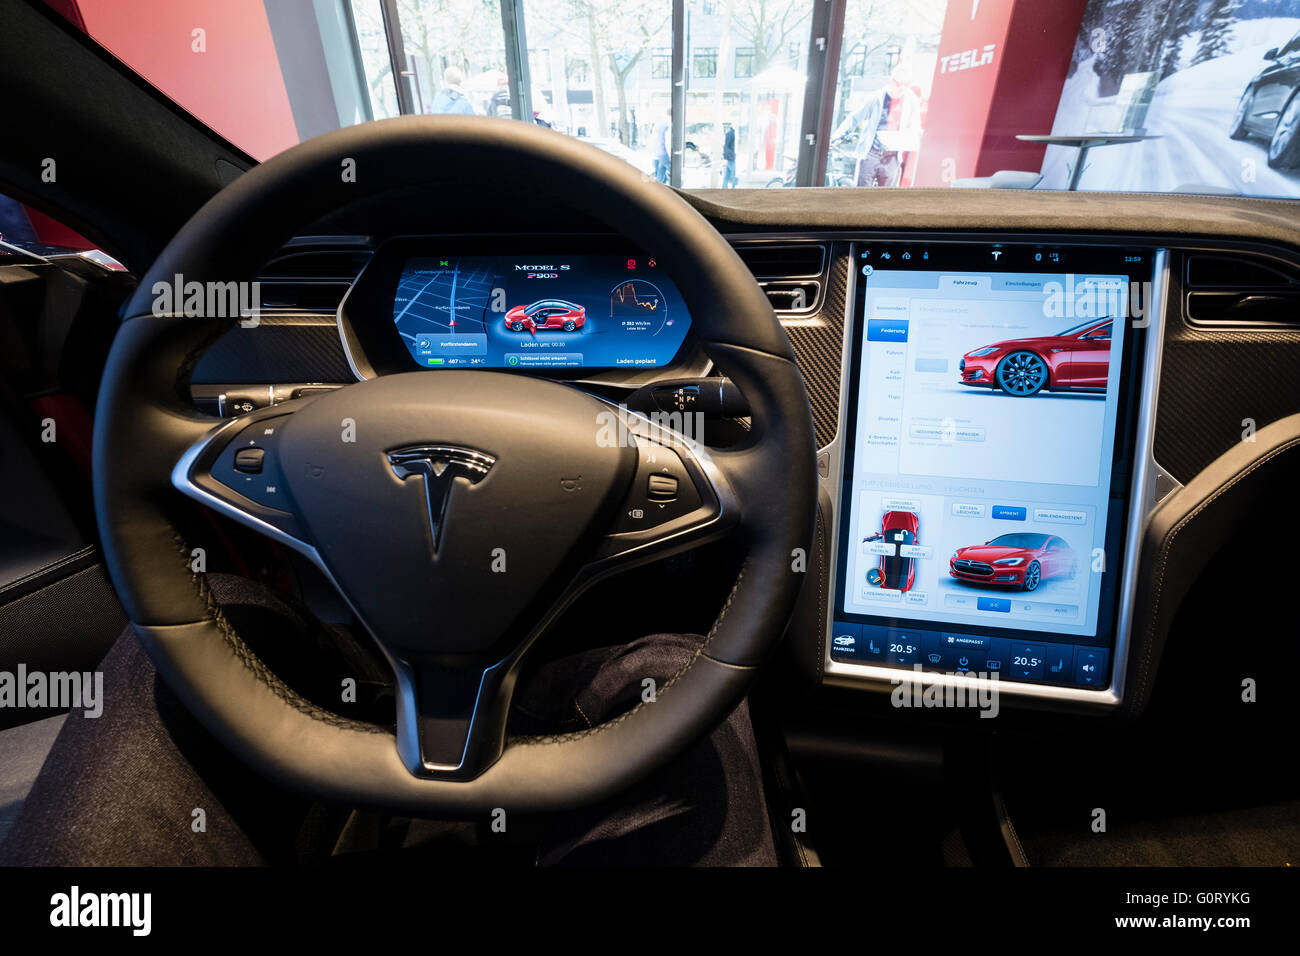 digital dashboard on model s car inside tesla electric car showroom stock photo 103788820 alamy. Black Bedroom Furniture Sets. Home Design Ideas